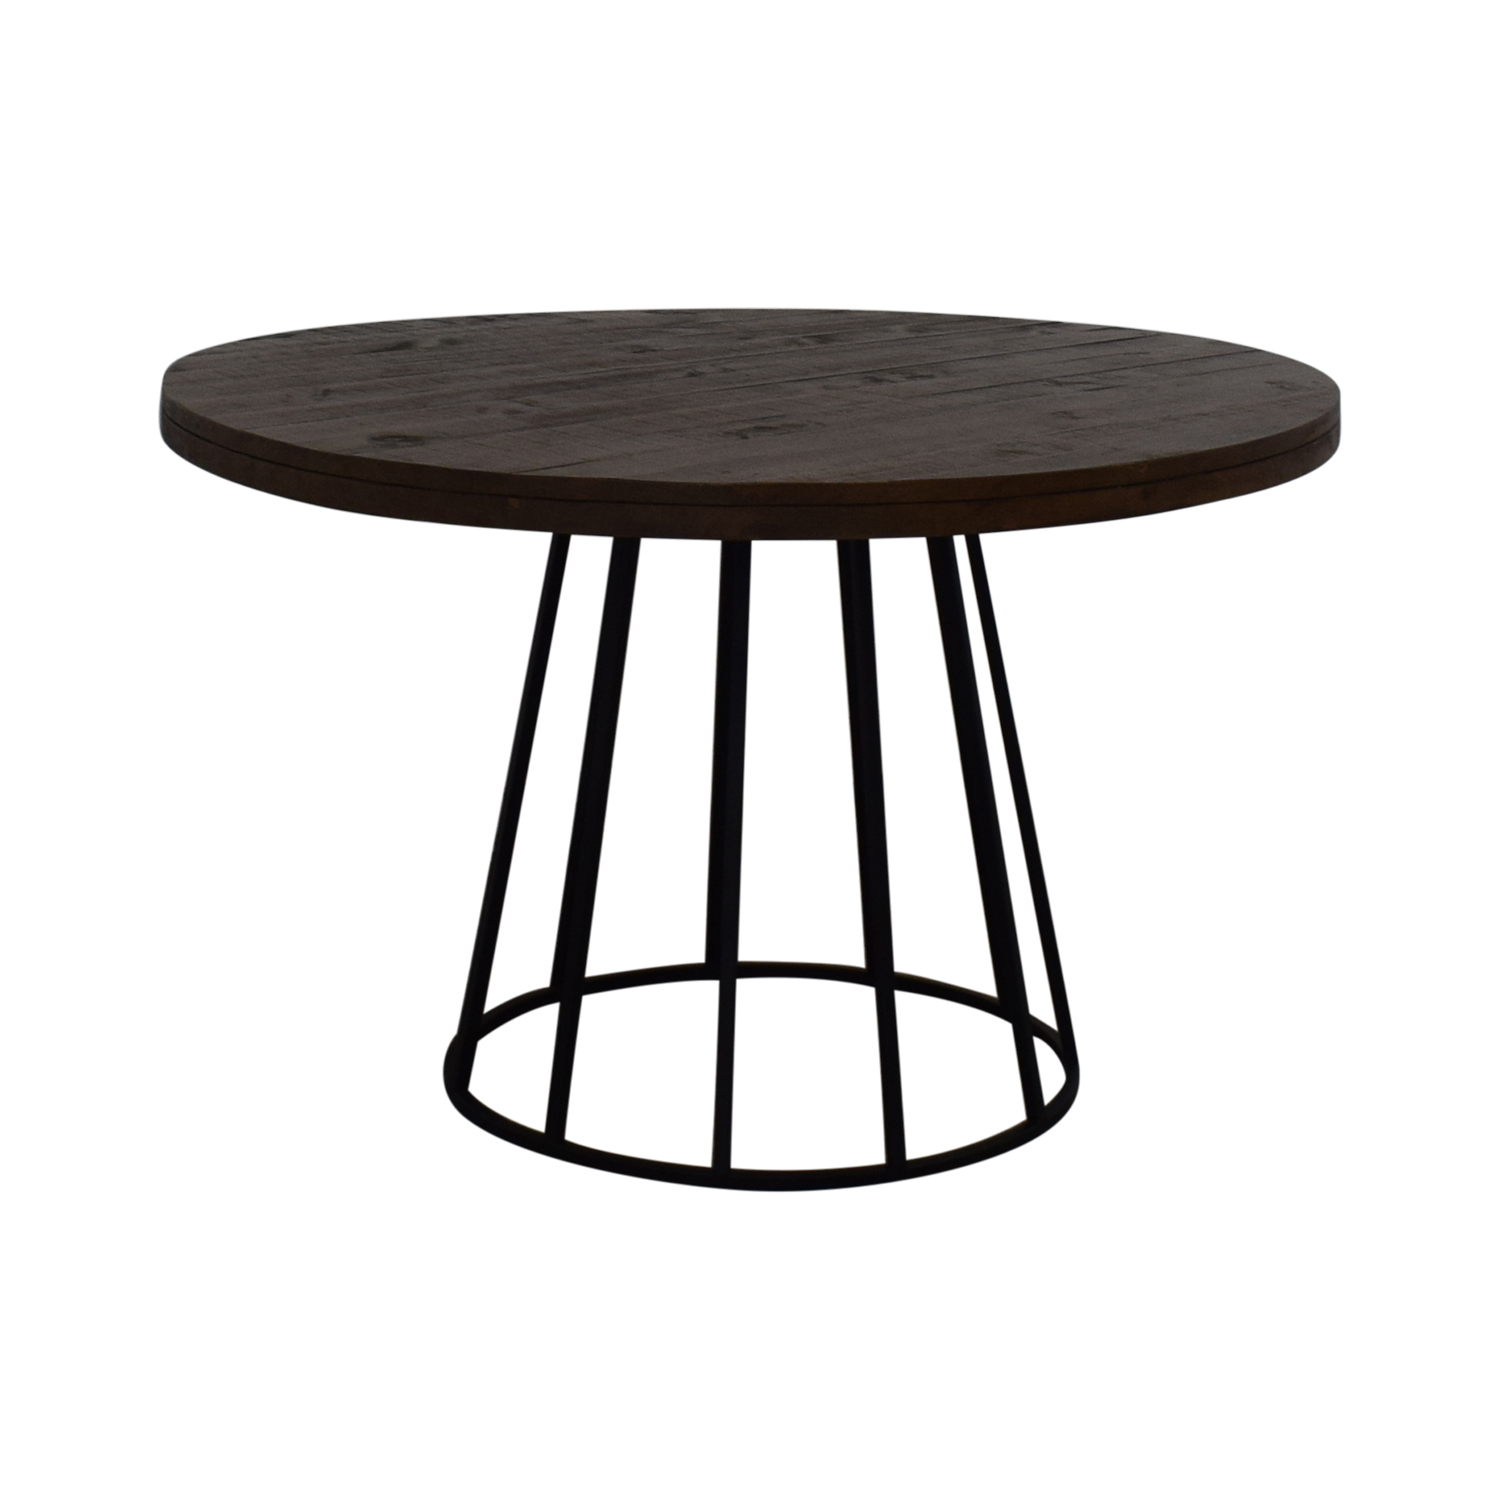 buy Mercury Row Mercury Row Morena Dining Table online